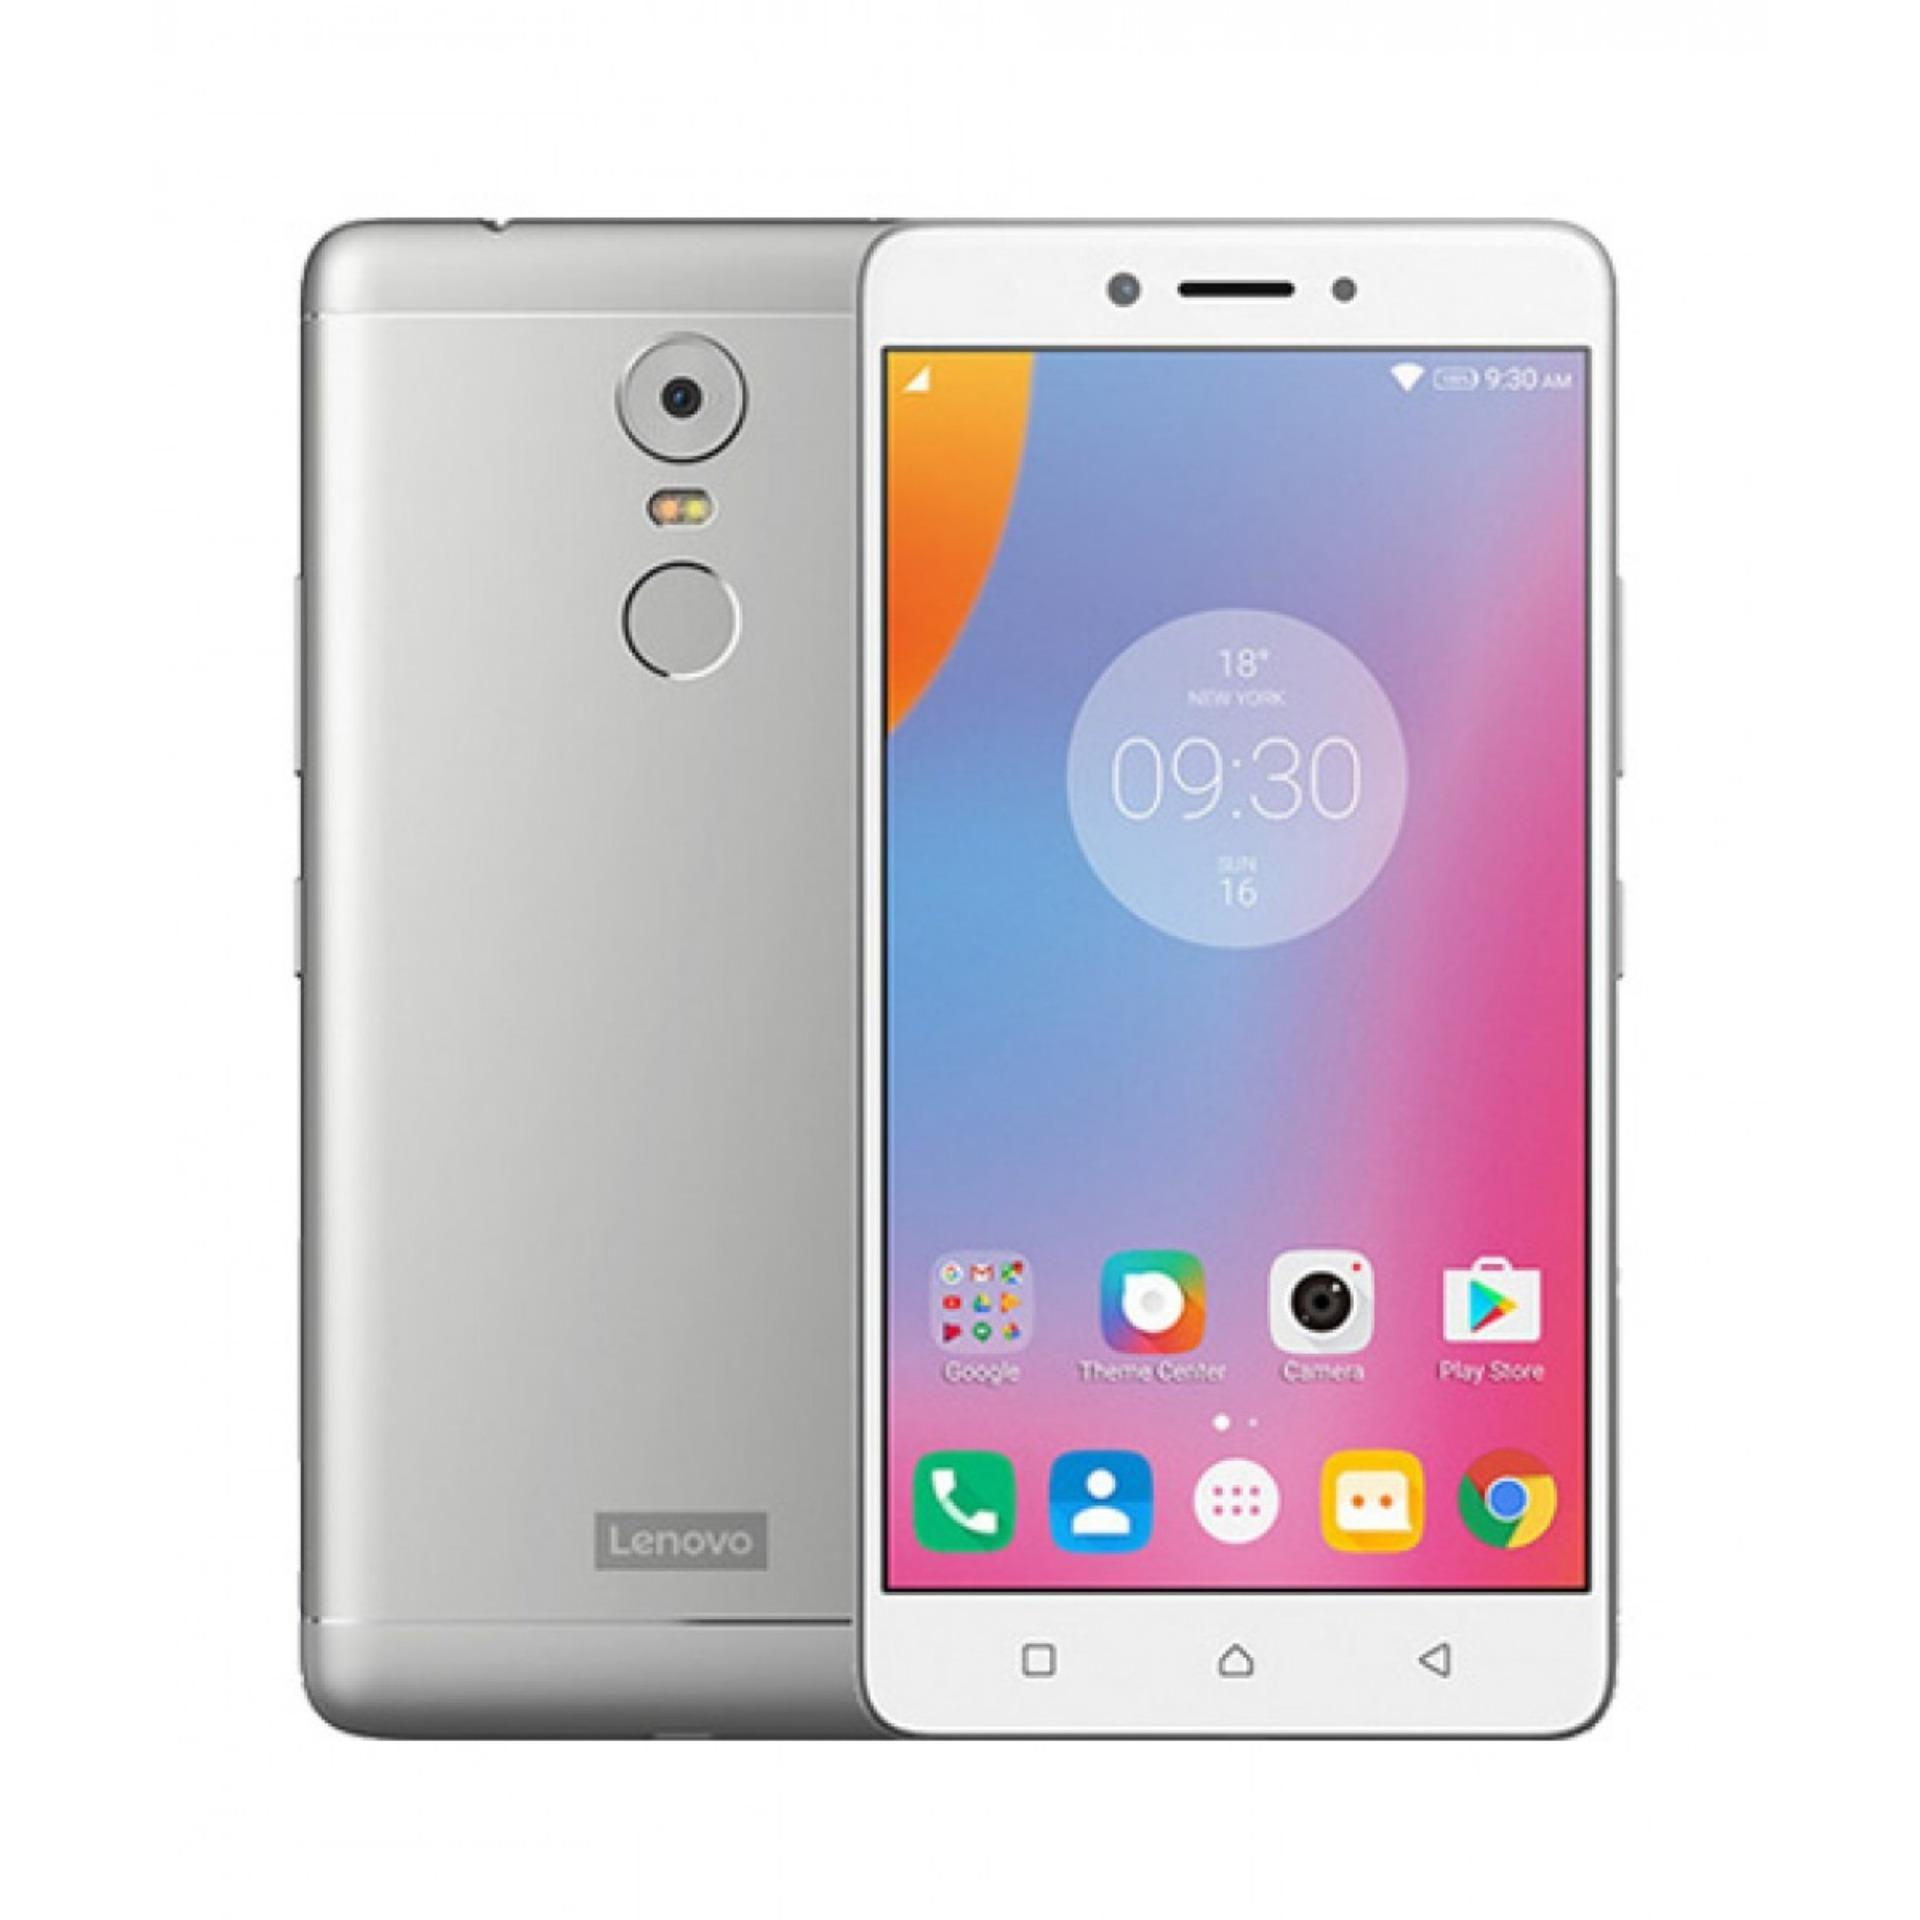 Lenovo Vibe K6 Power 50 4g Lte Ram 3gb Rom 32gb Indonesia Livo S90